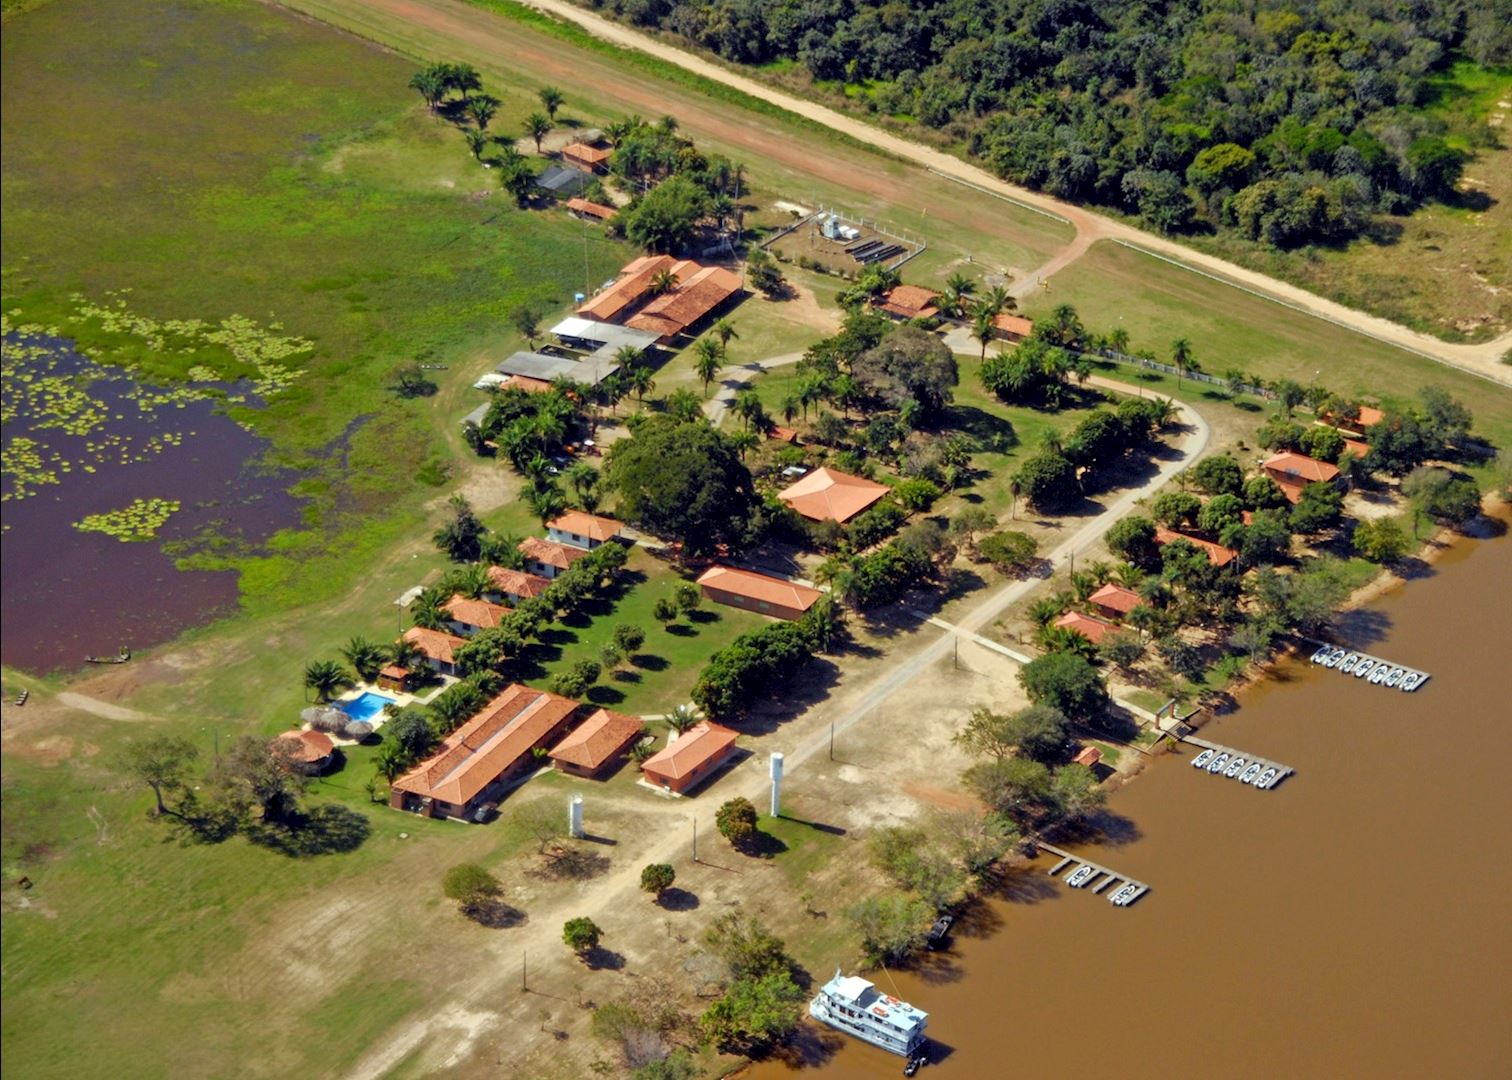 Hotel Porto Jofre | Hotels in The Pantanal